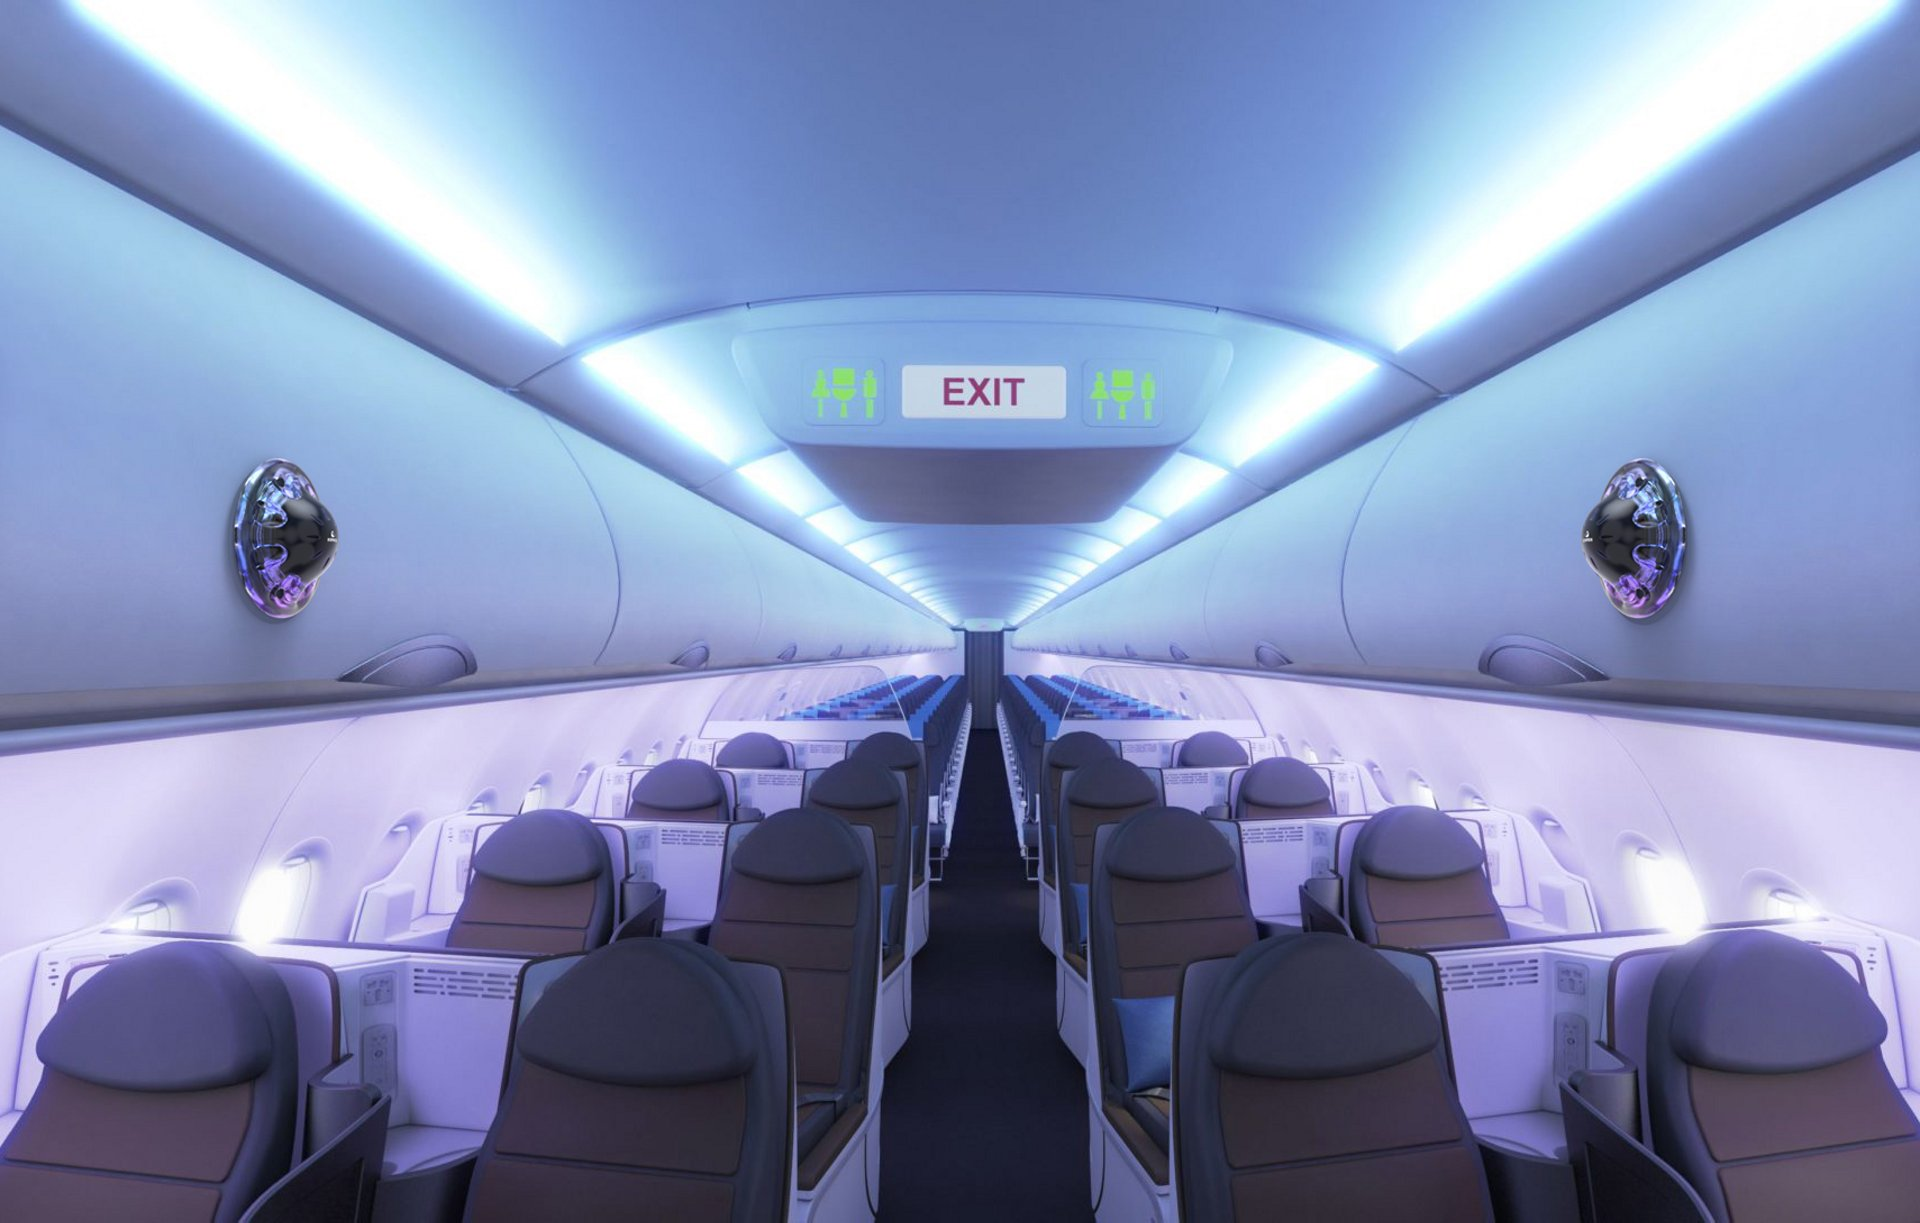 Aircraft cabin with disruptive biotechnology solutions for aviation security operations